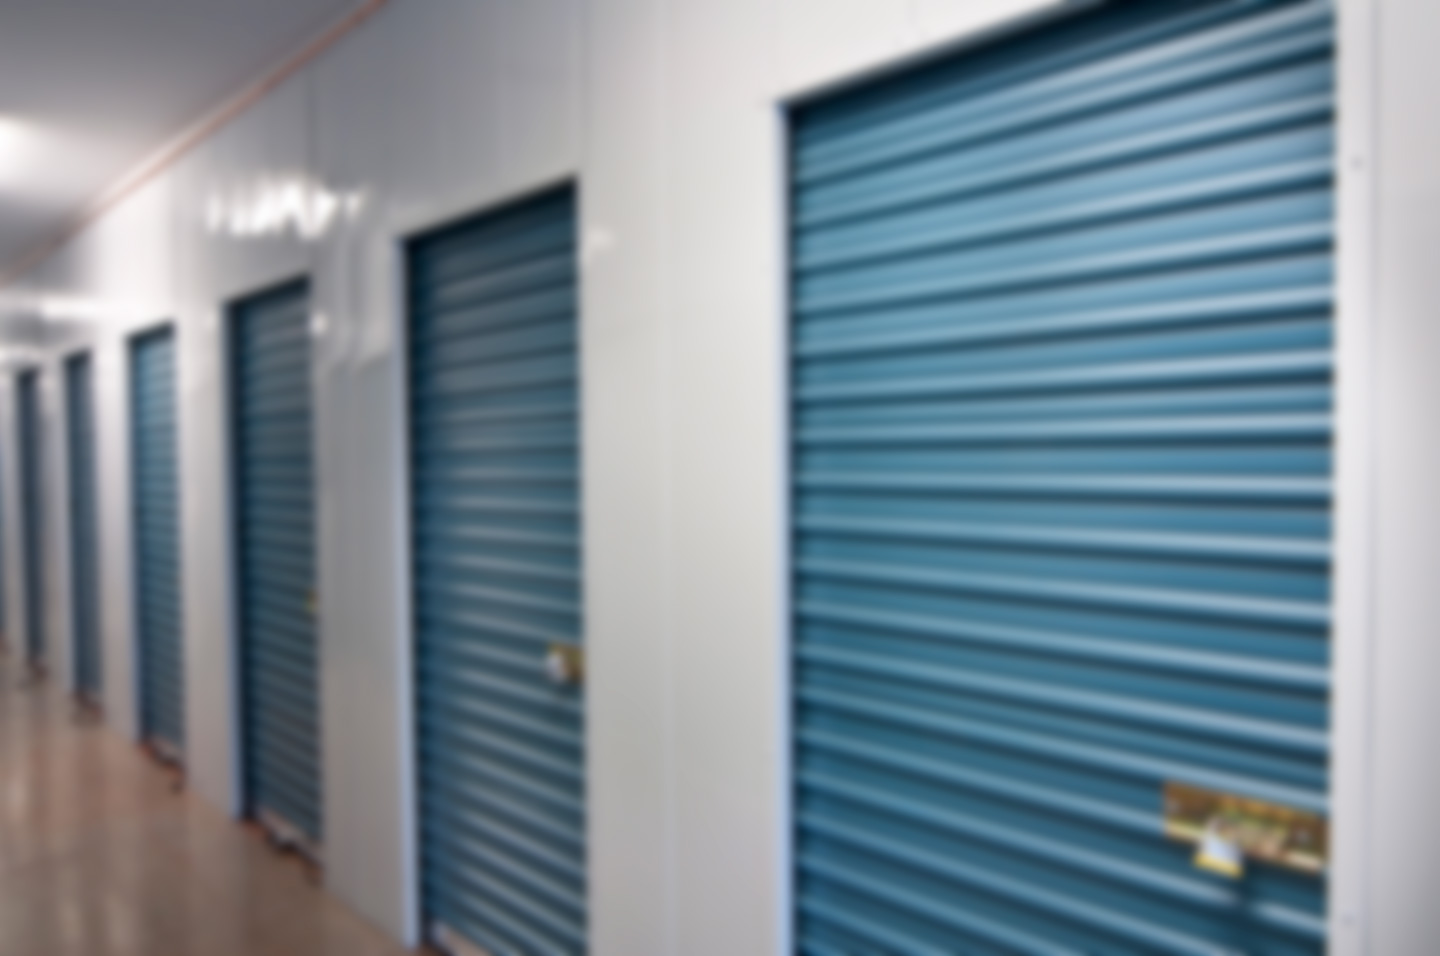 Storage unit doors with locks